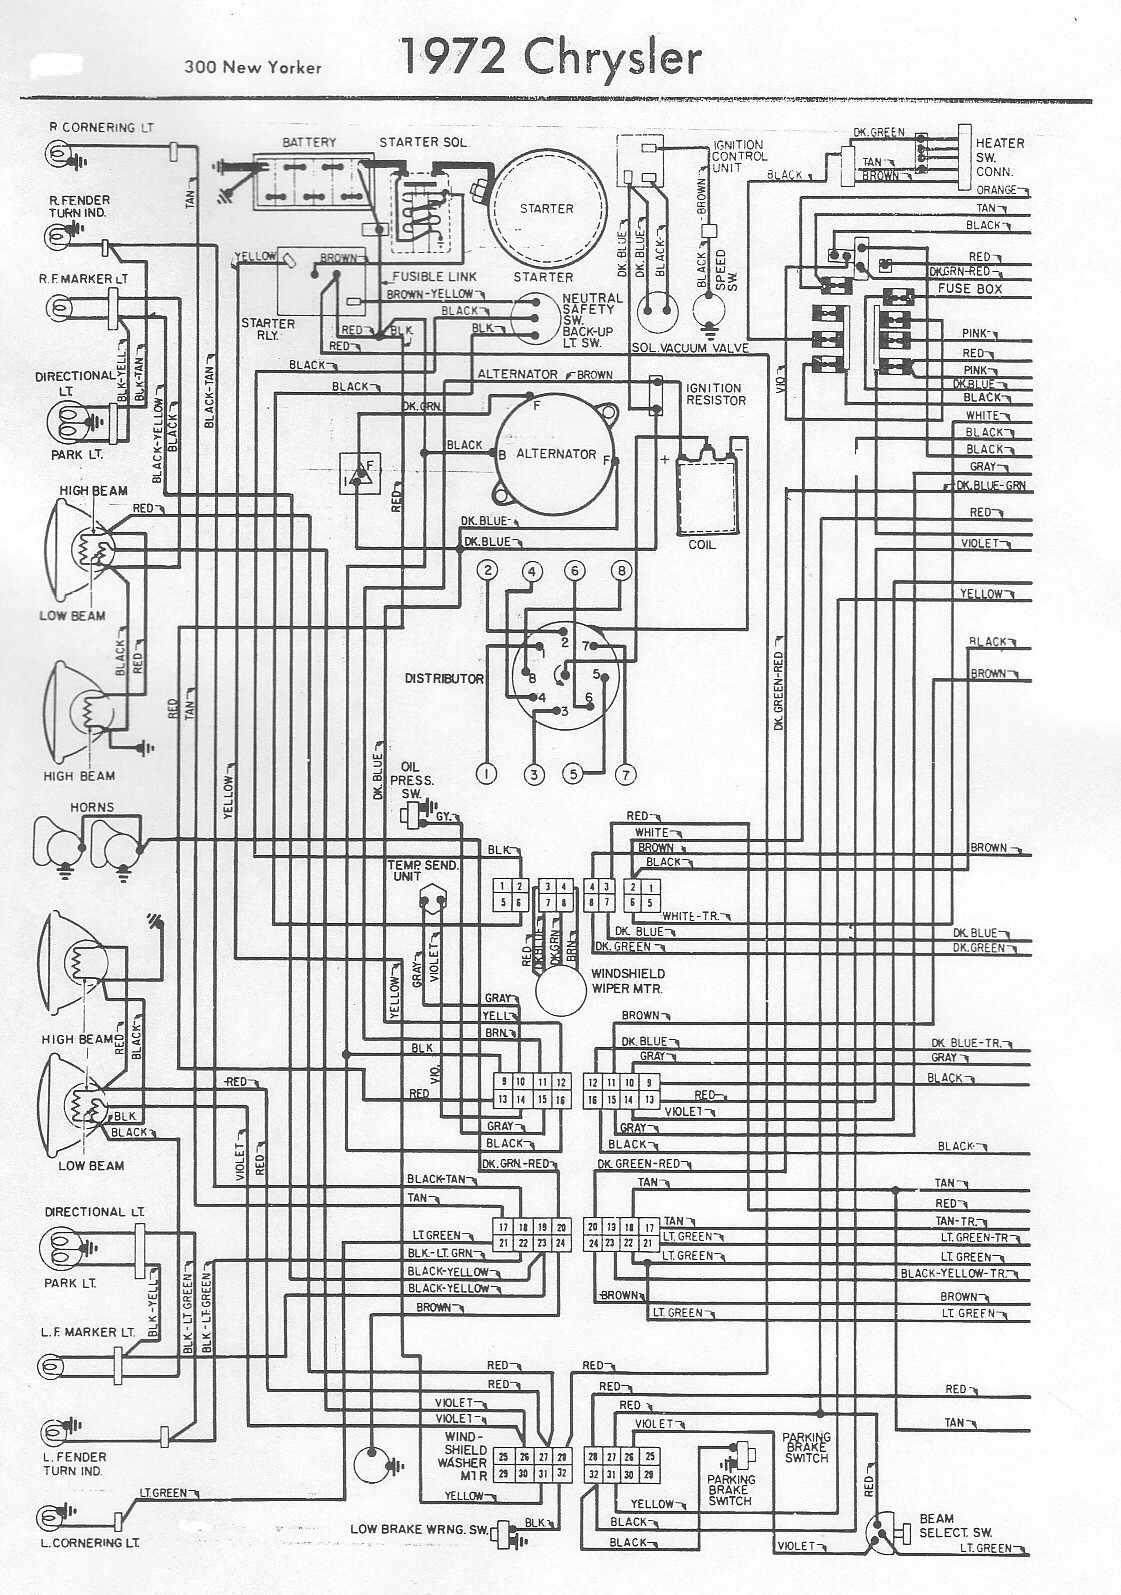 92 Plymouth Voyager Wiring Diagram Diagrams Chrysler 1997 1993 New Yorker Fuse Box Dodge Ram Engine